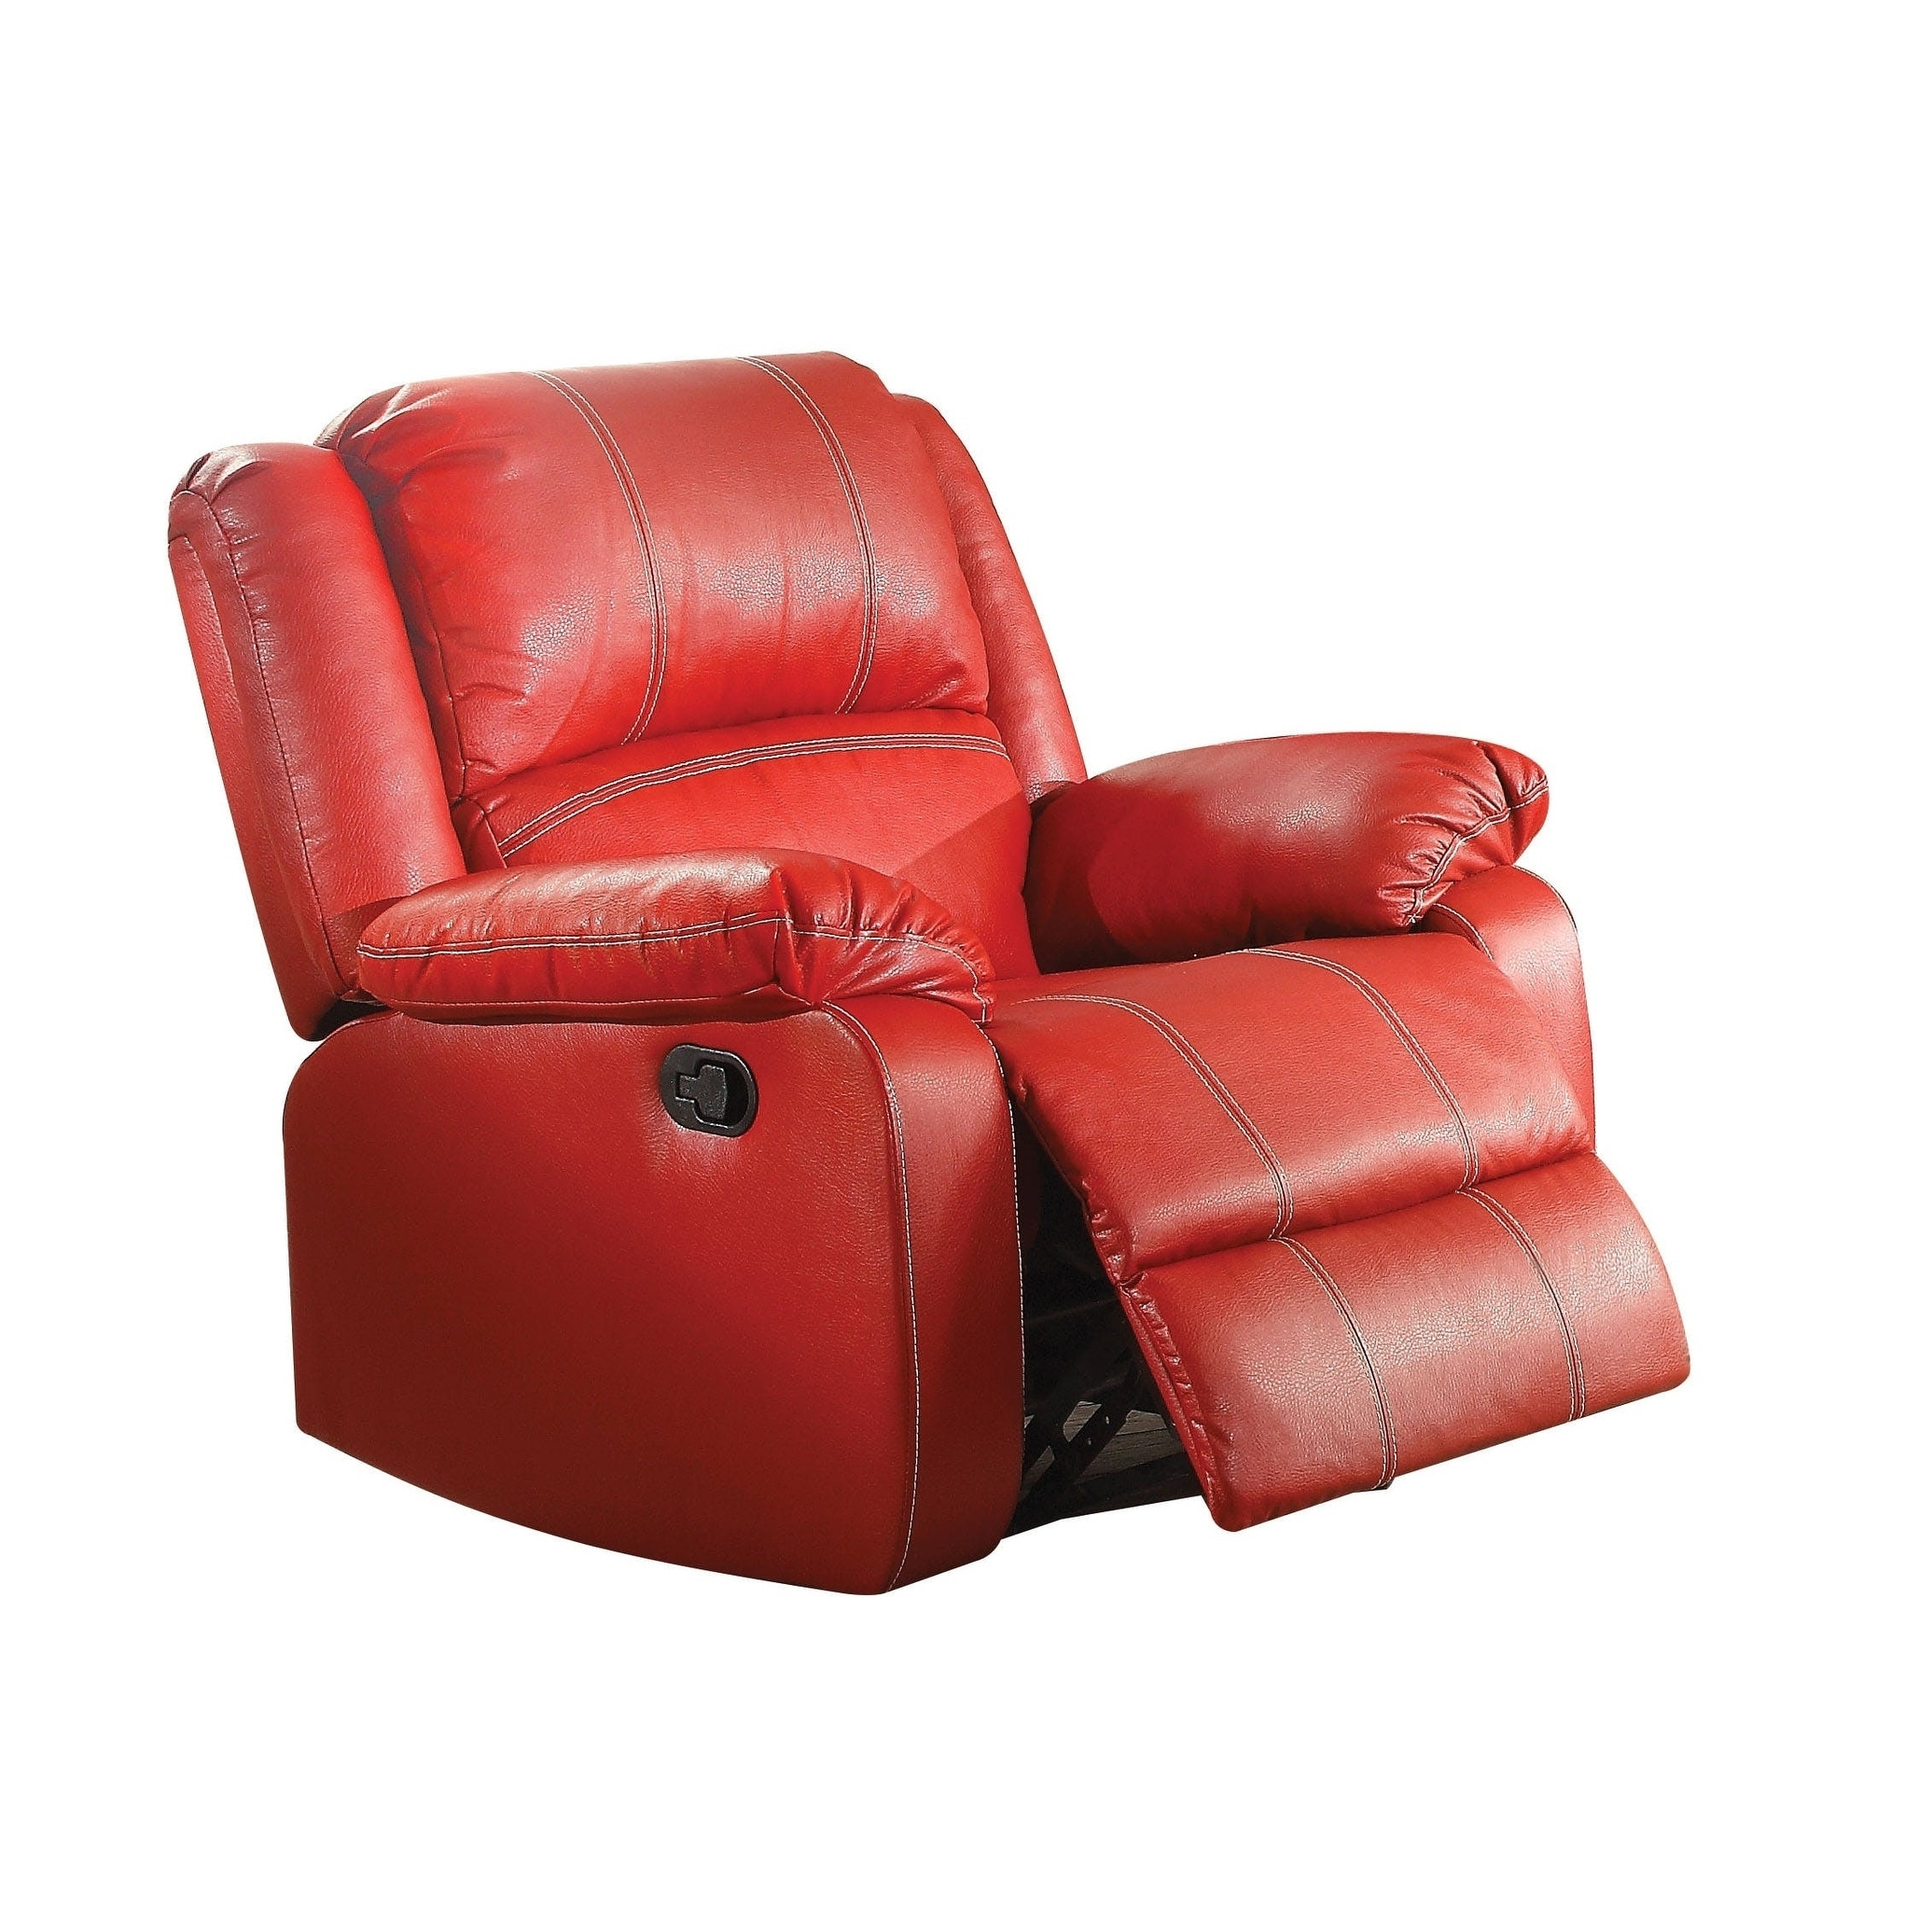 Dfs Red Leather Swivel Chair: Red Leather Rocker Recliner Chair